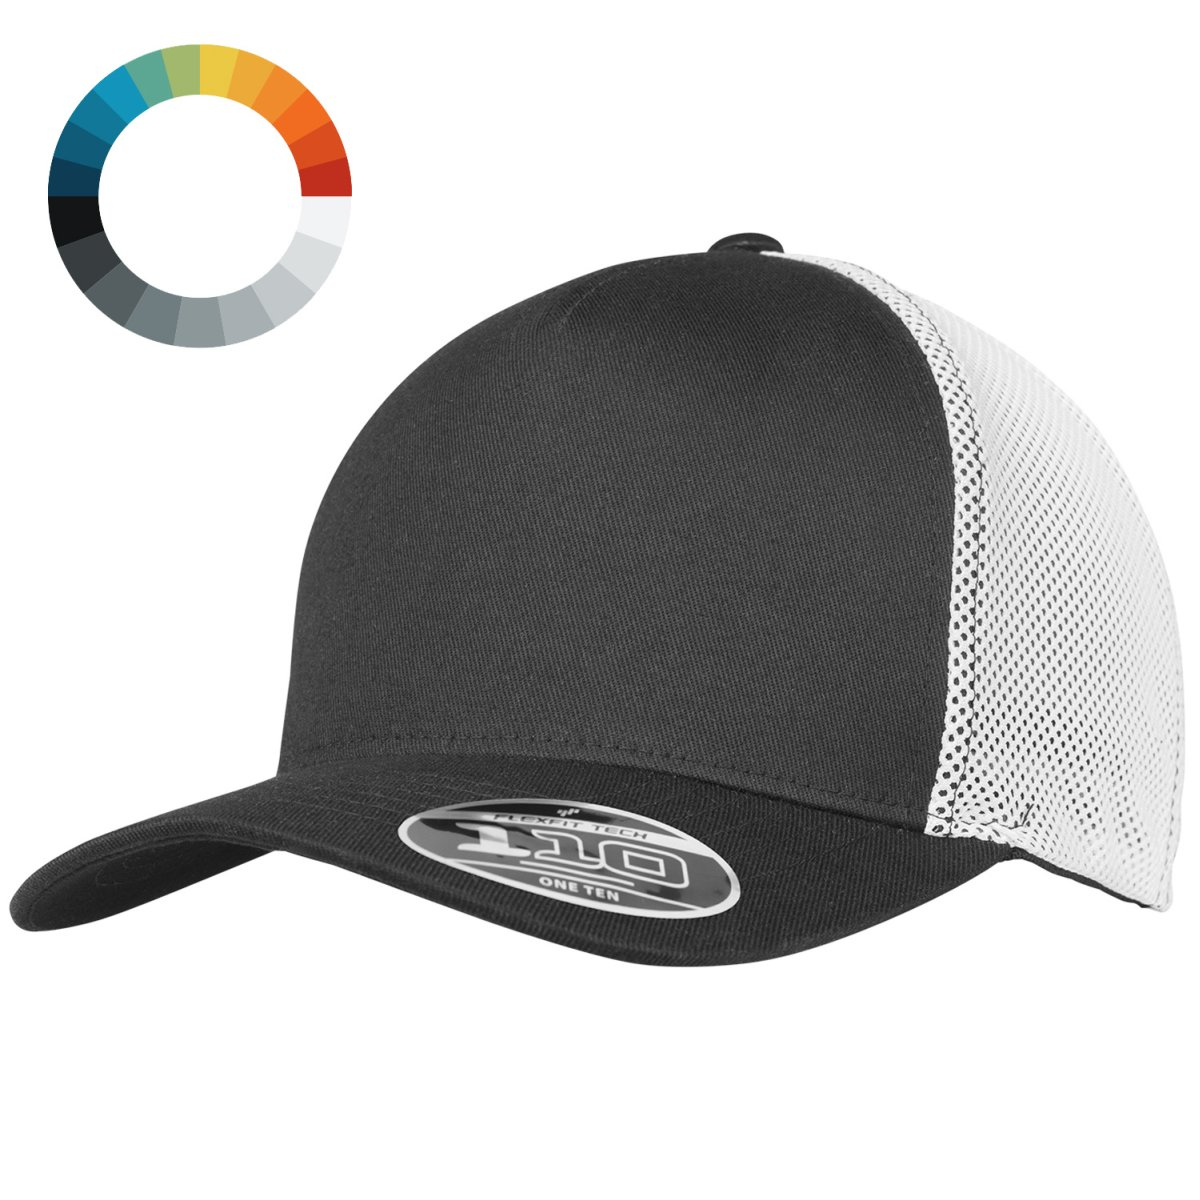 be103b71 Details about Flexfit Stretch Sports Fitness Pro-Formance 110 Mesh Cap -  One Size